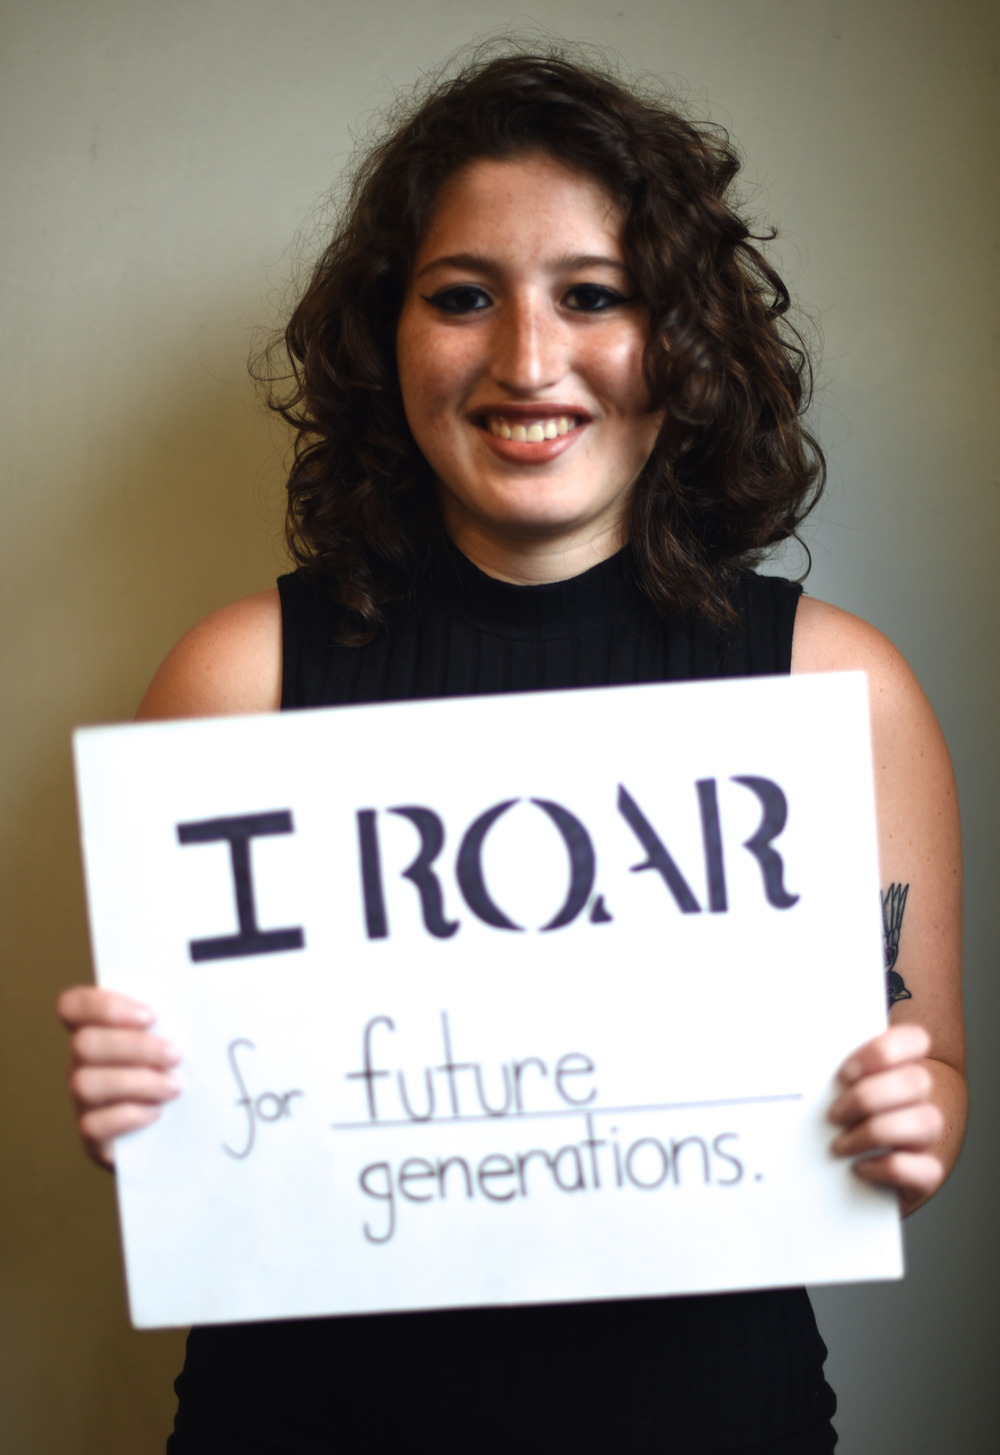 Hunter Vargas is an honors marketing student graduating from Temple University's Fox School of Business and Management in May. As ROAR's marketing coordinator, she's passionate about women's empowerment and feminism. Hunter has traveled to 15+ countries, jumped out of a plane, is an excellent gift-giver, and enjoys eating out at Philly's amazing restaurants.